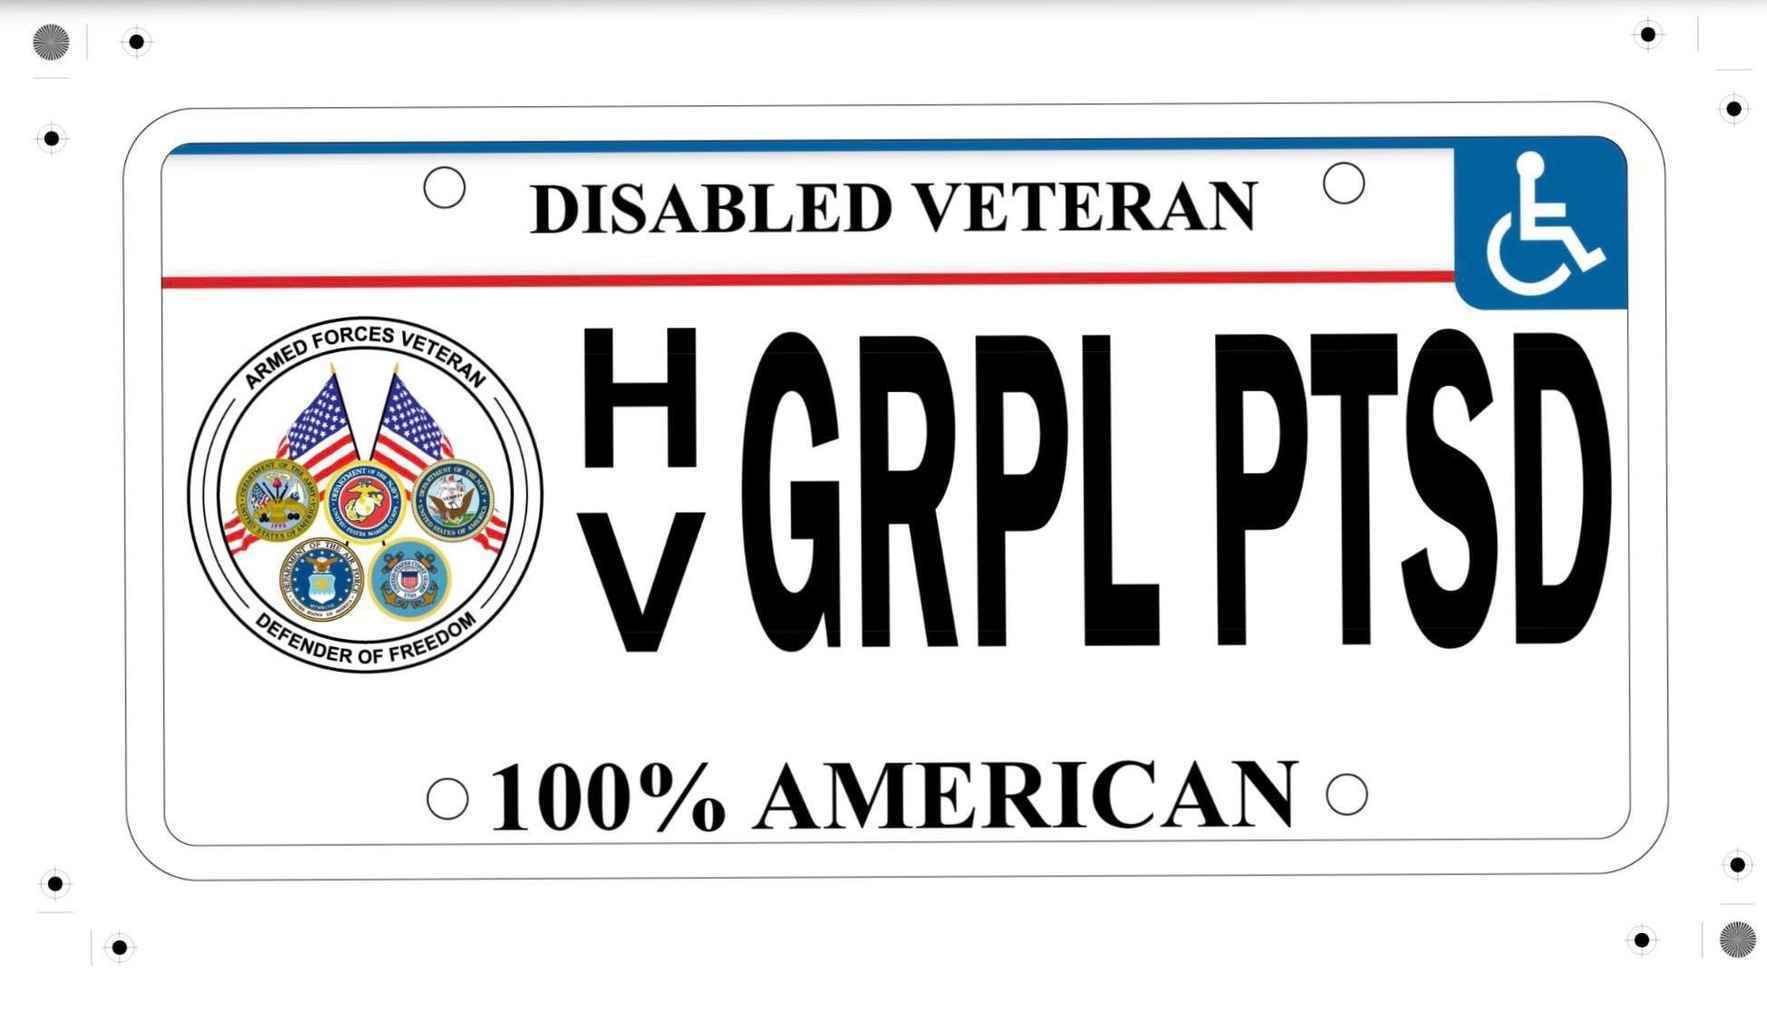 Donate now & help our Veterans get the help they deserve image